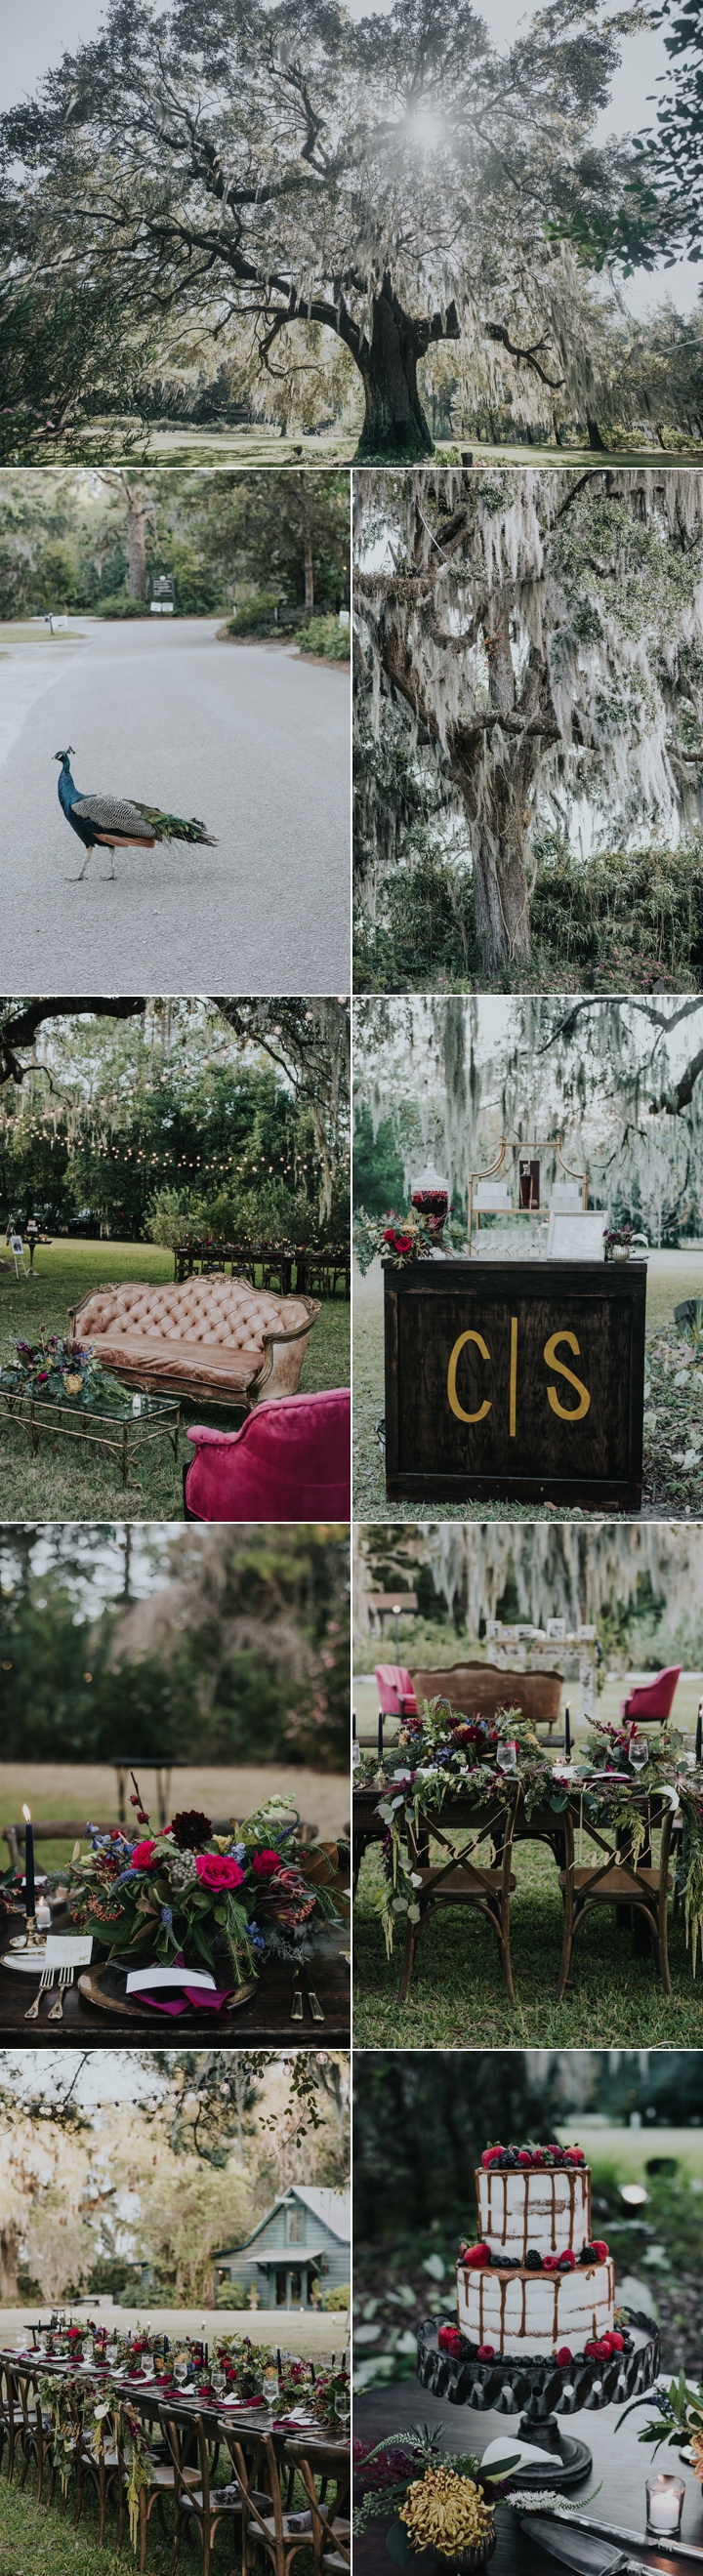 magnolia plantation weddings charleston sc 20.jpg